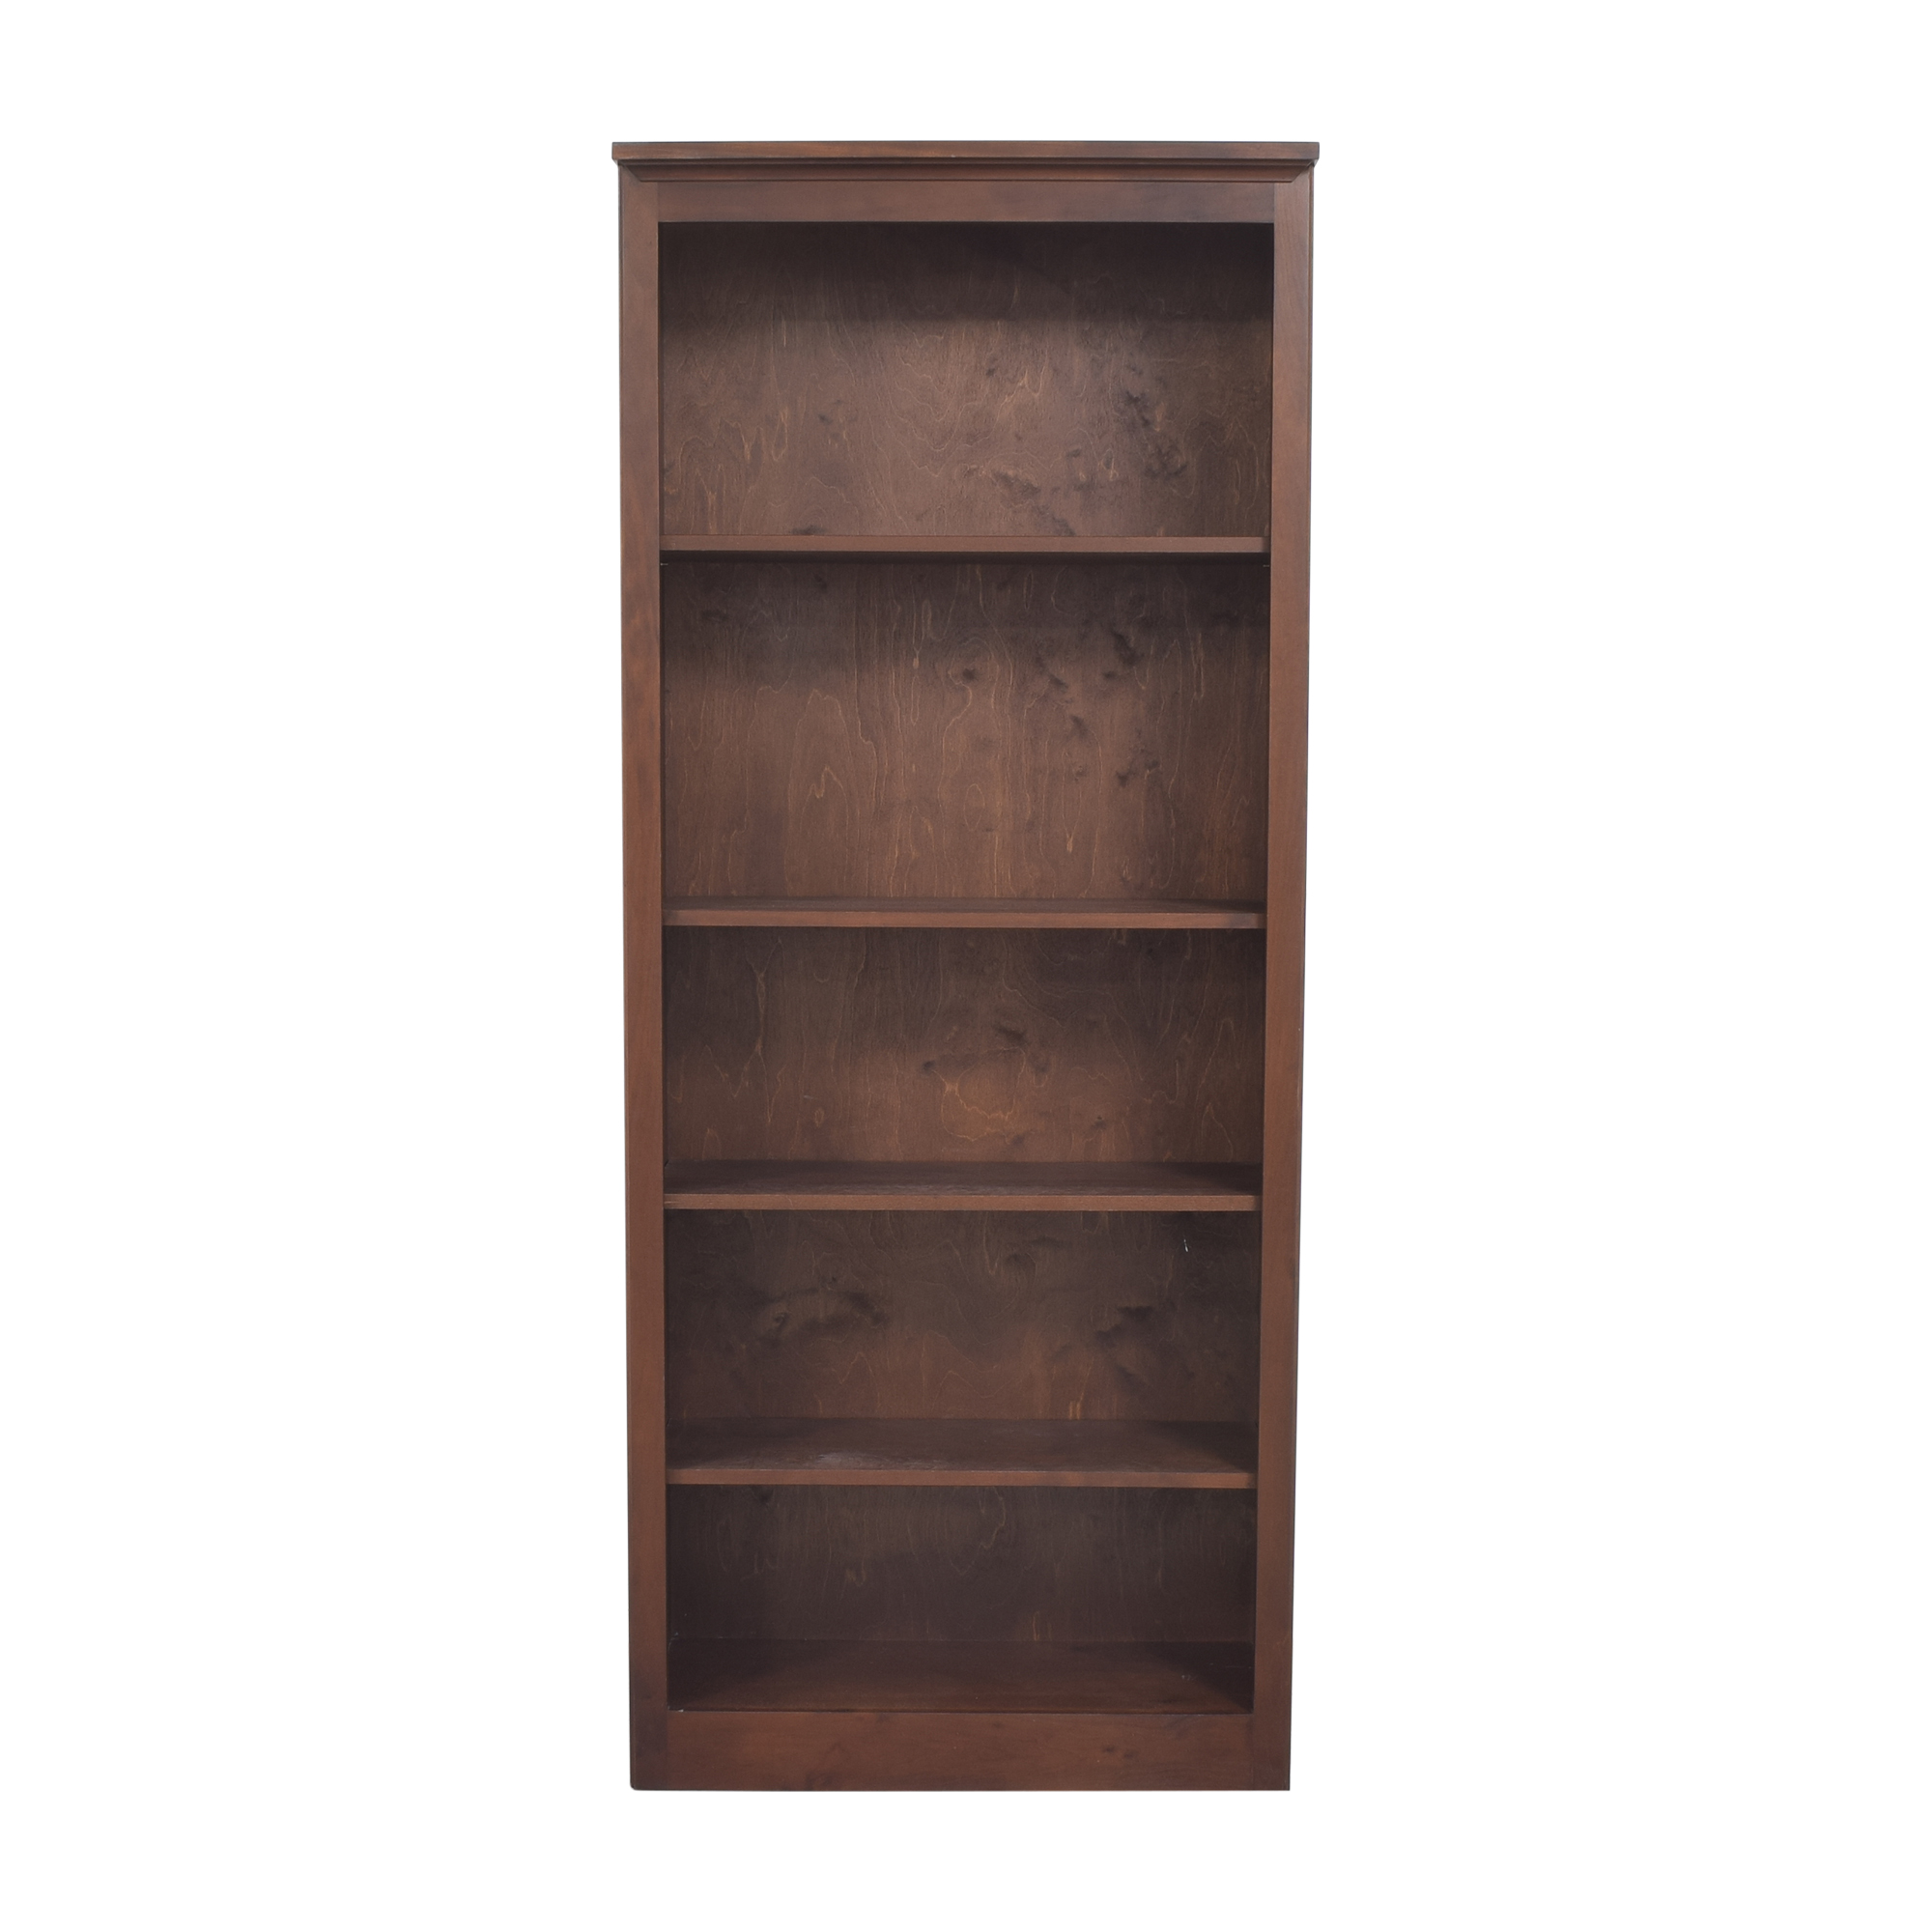 Crate & Barrel Tall Bookcase Crate & Barrel